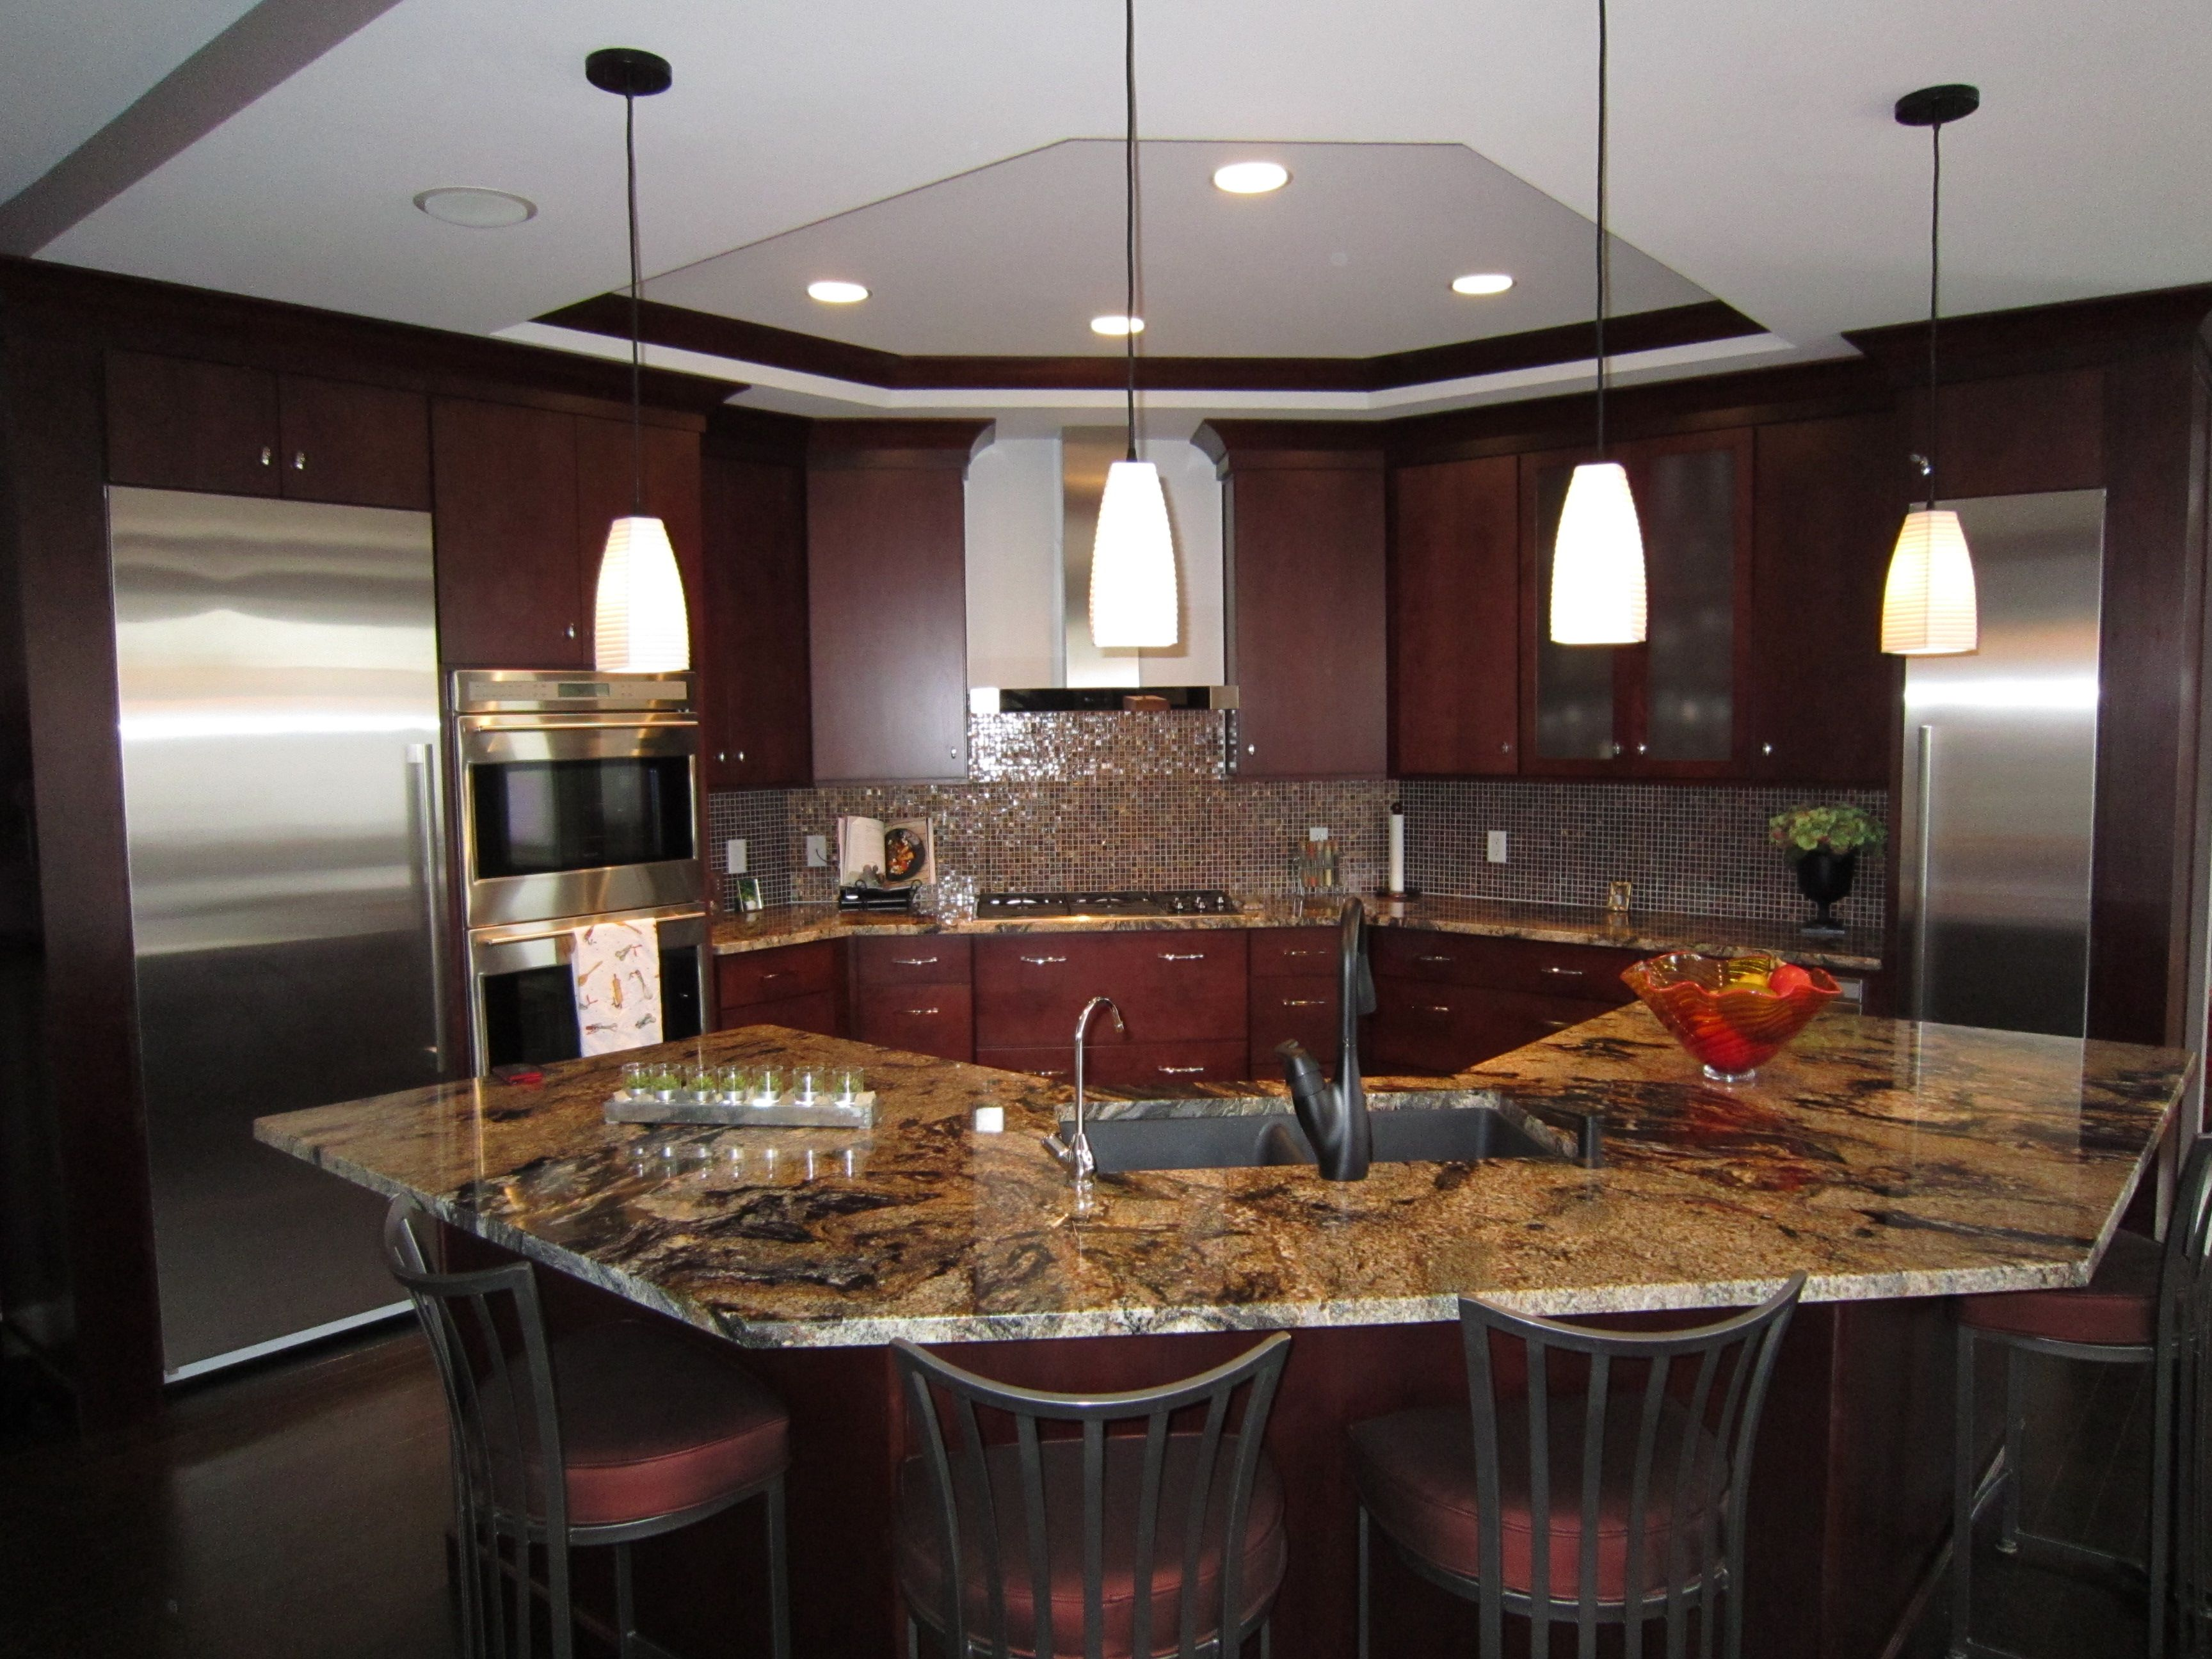 luxury kitchens photo gallery please enable javascript to view the comments powered by disqus on kitchen interior luxury id=81139